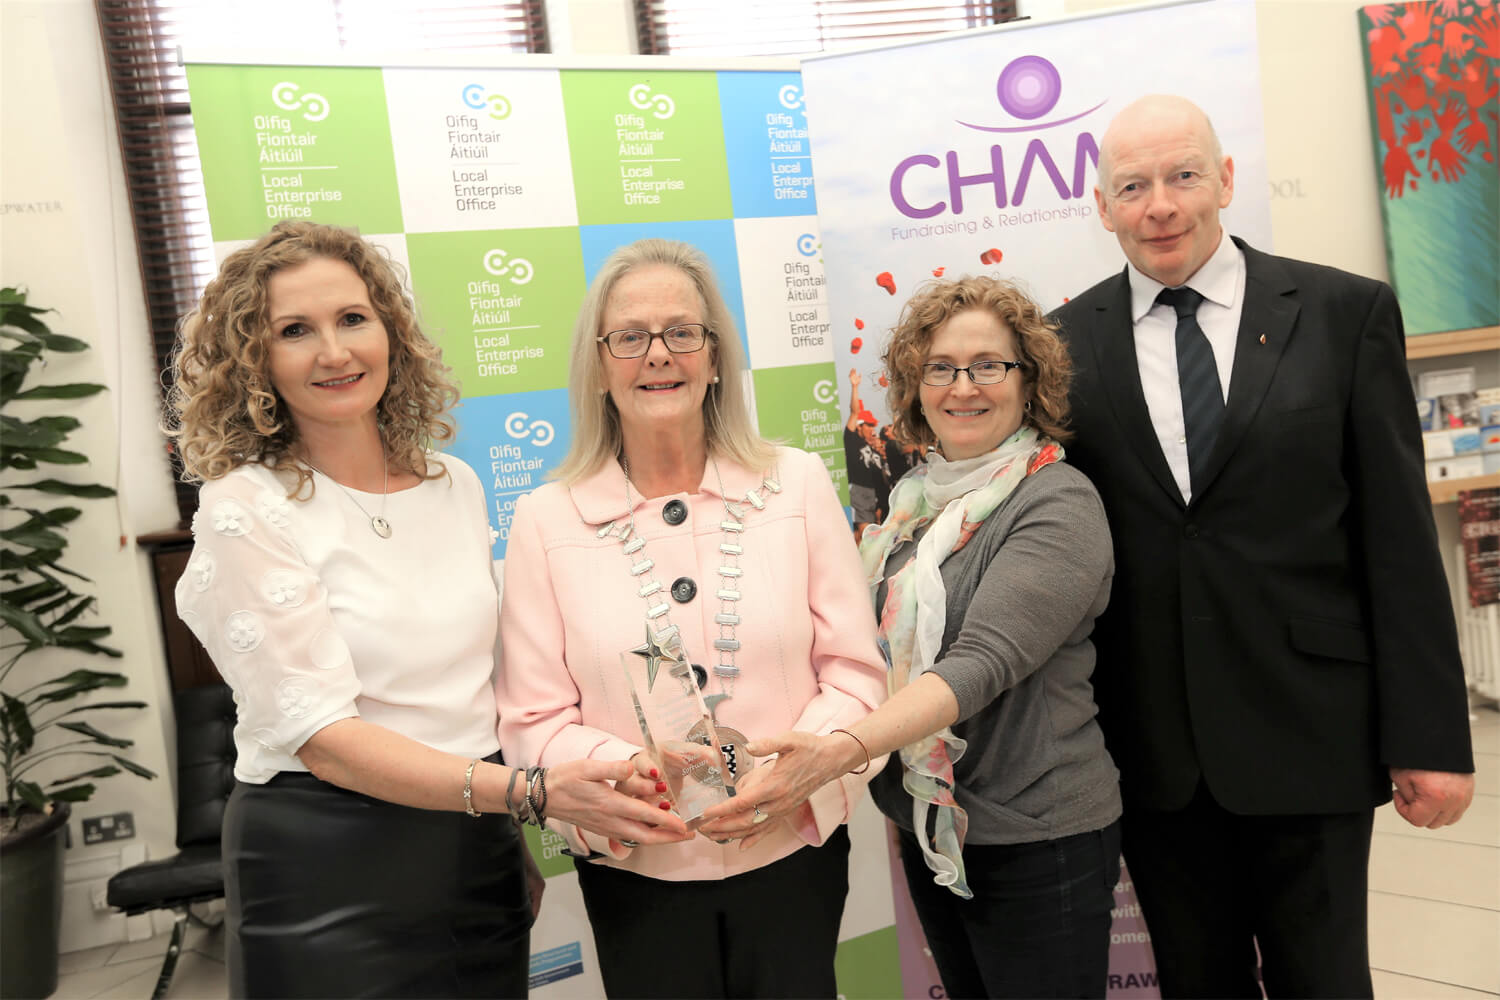 Champ Cloud Software are Sligo's Enterprise Award Winners for 2019